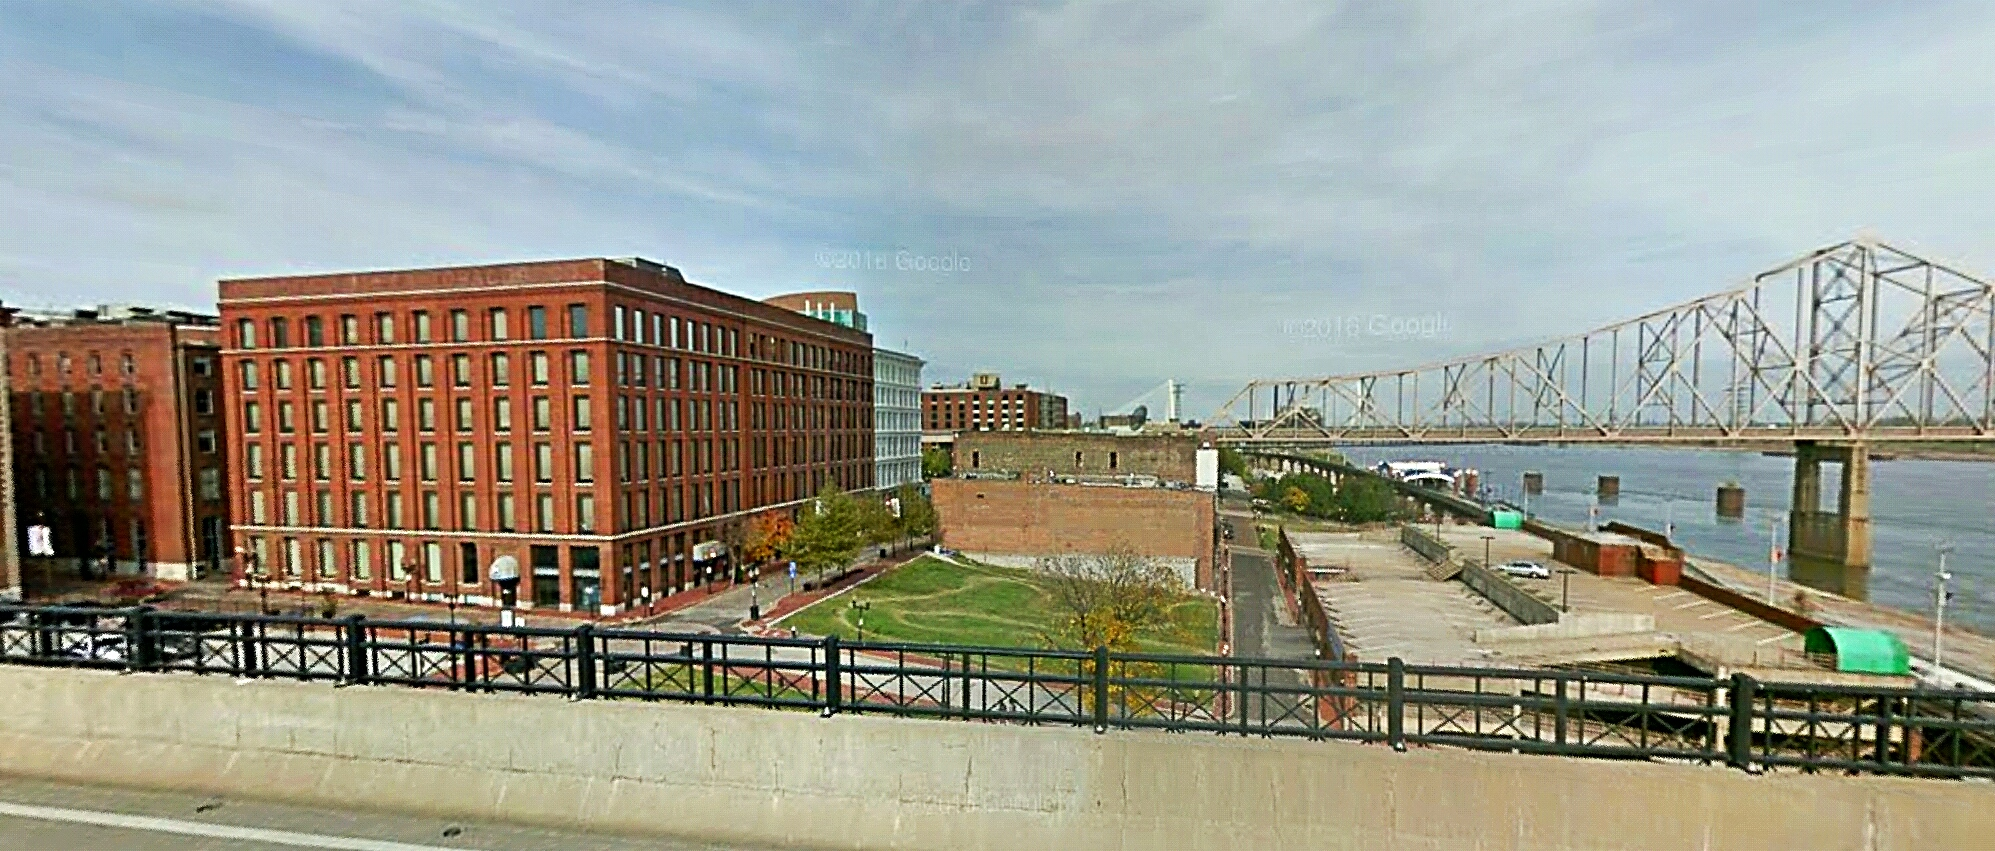 Residential Conversion Coming to Laclede's Landing